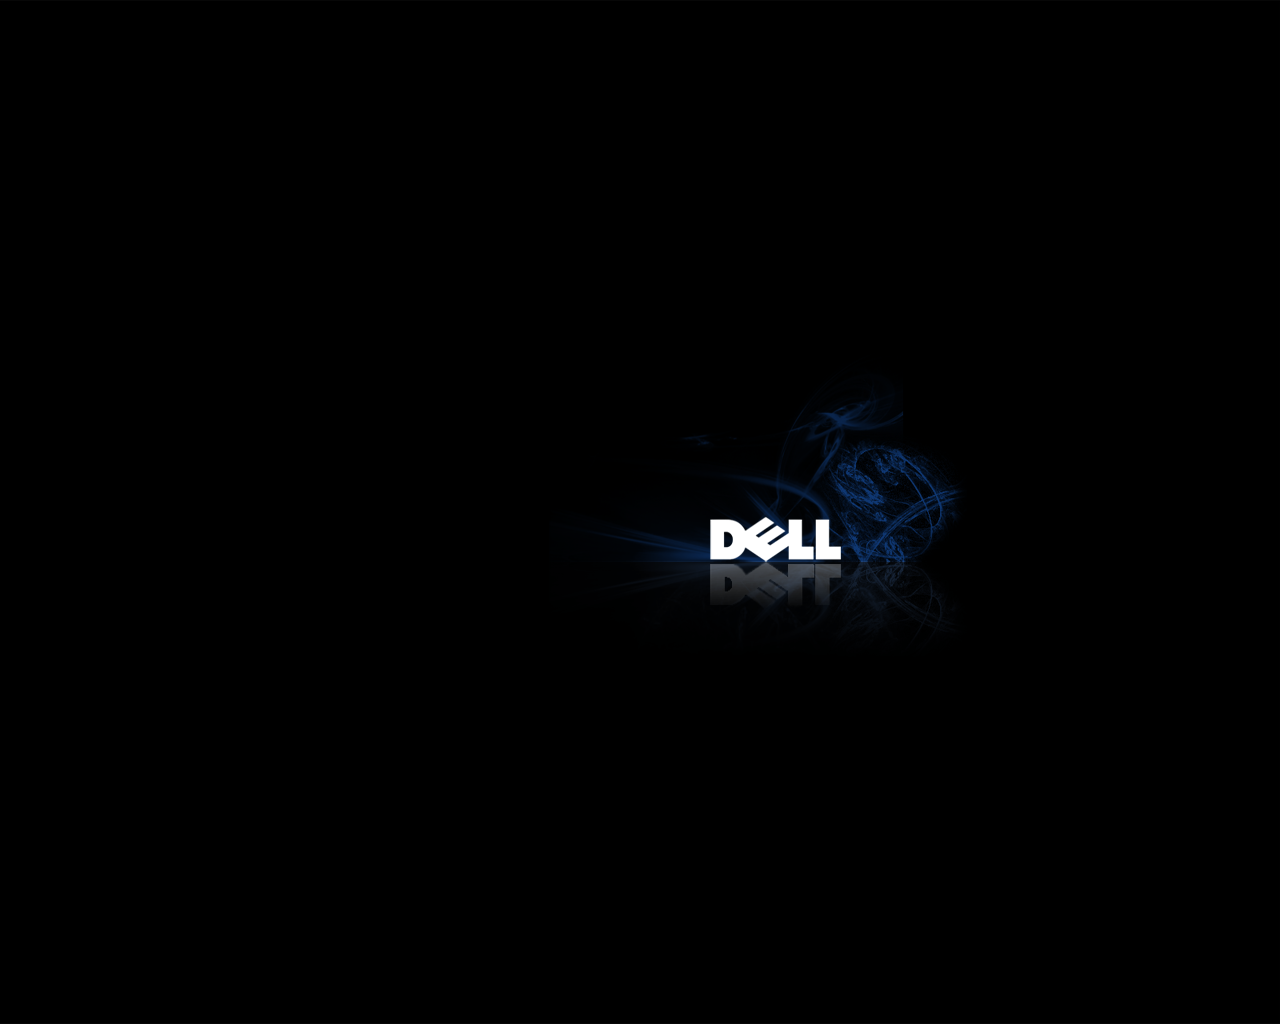 hd wallpapers hd wallpapers for dell laptop